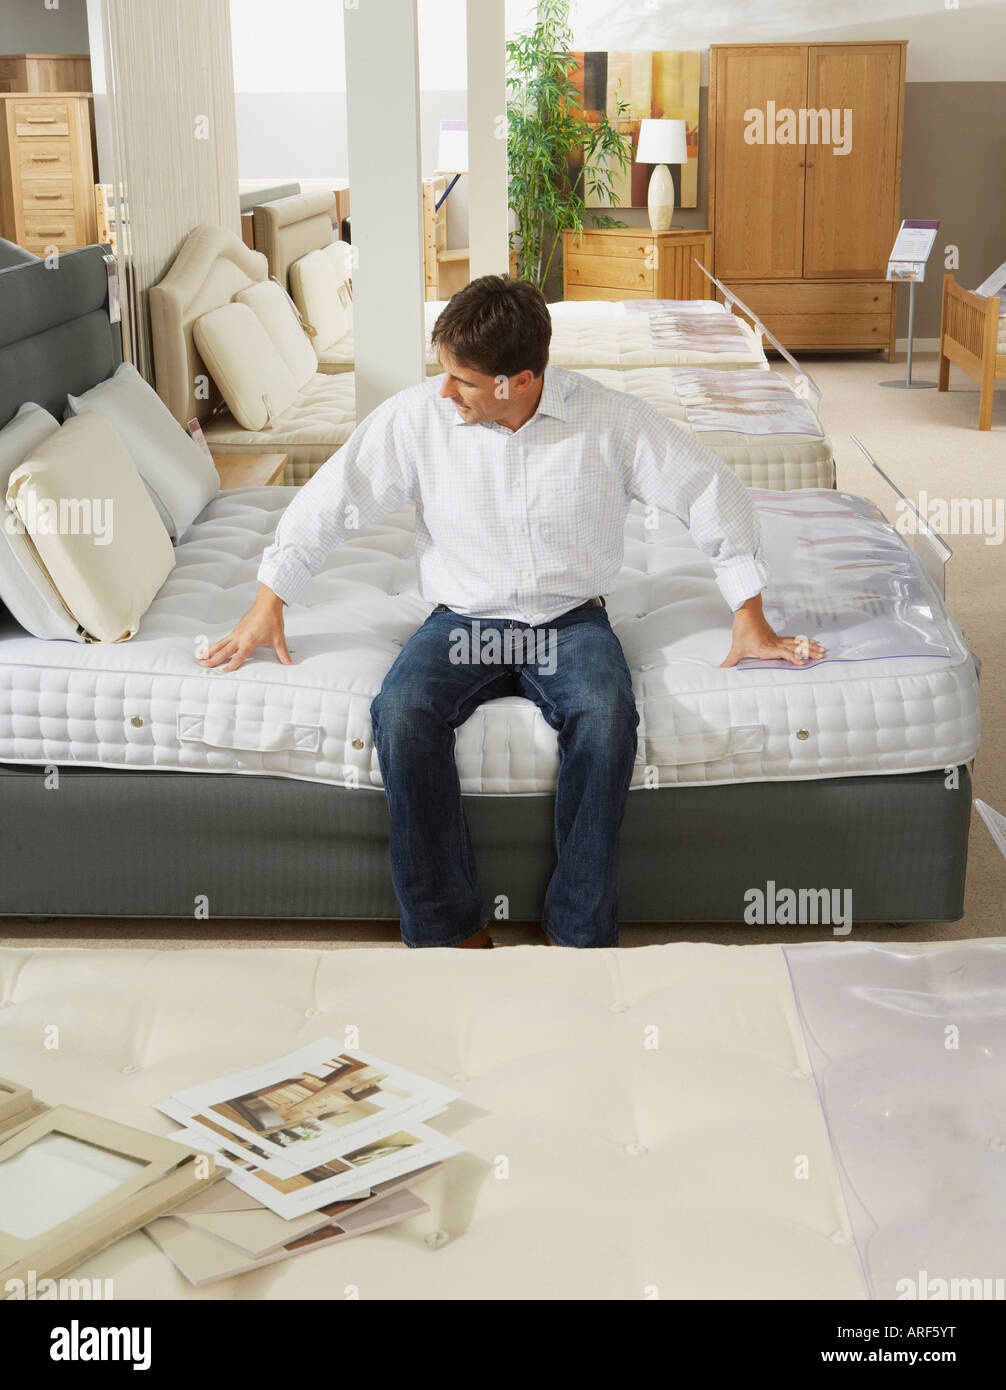 Man Sitting On Bed In Furniture Store   Stock Image